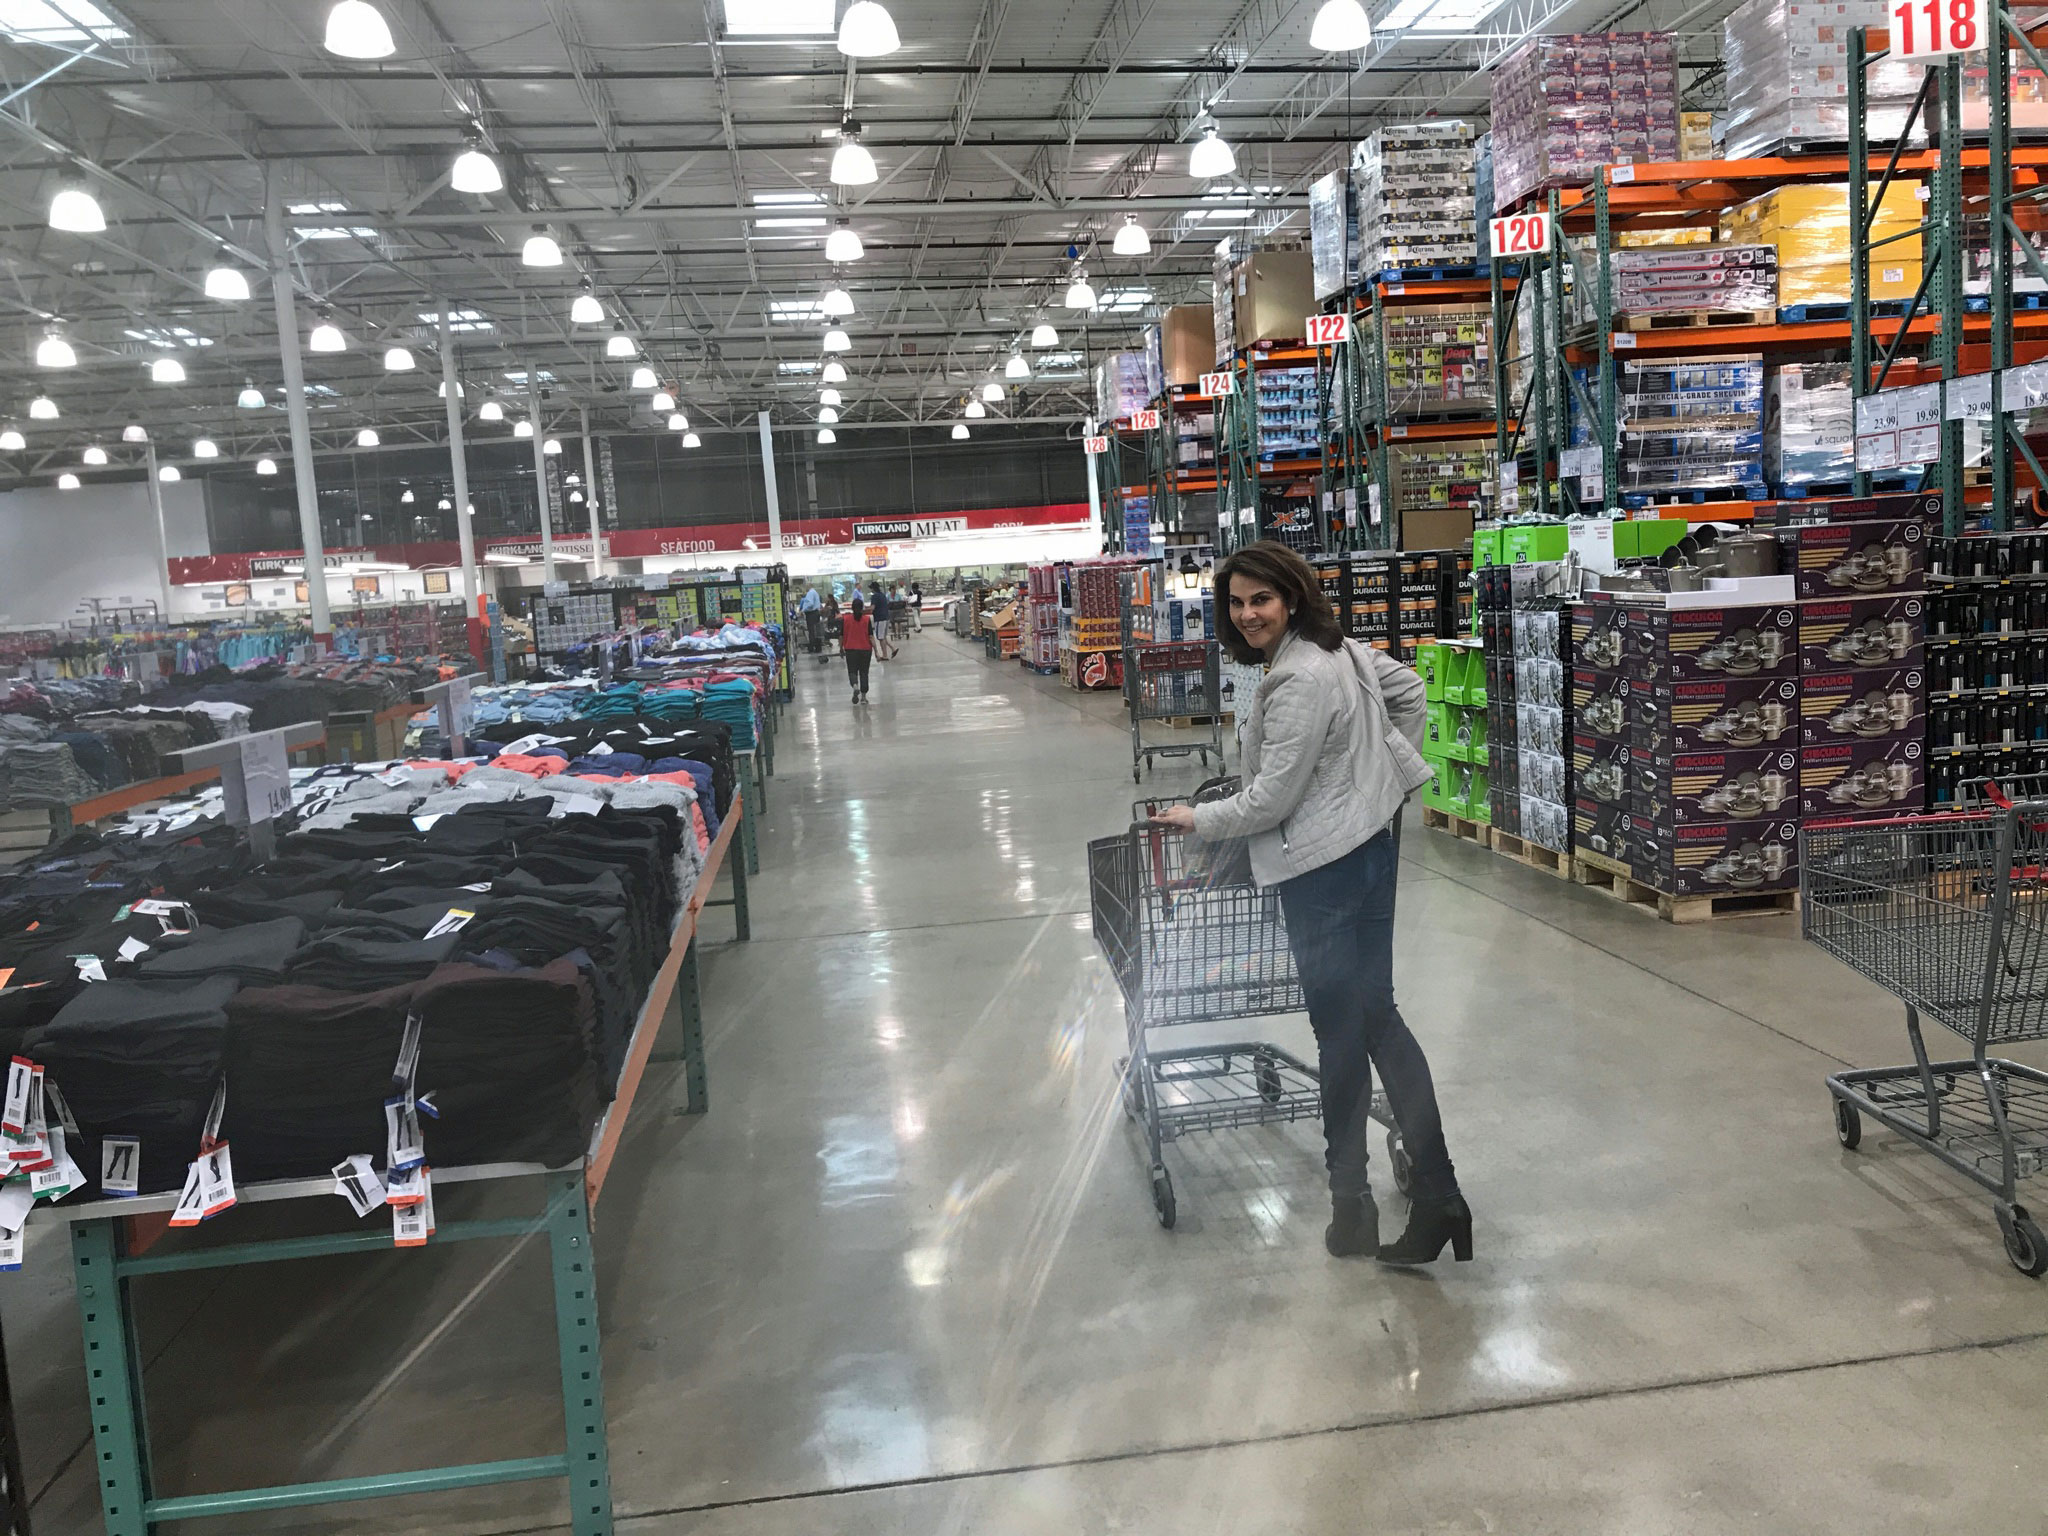 Mimi at Costco